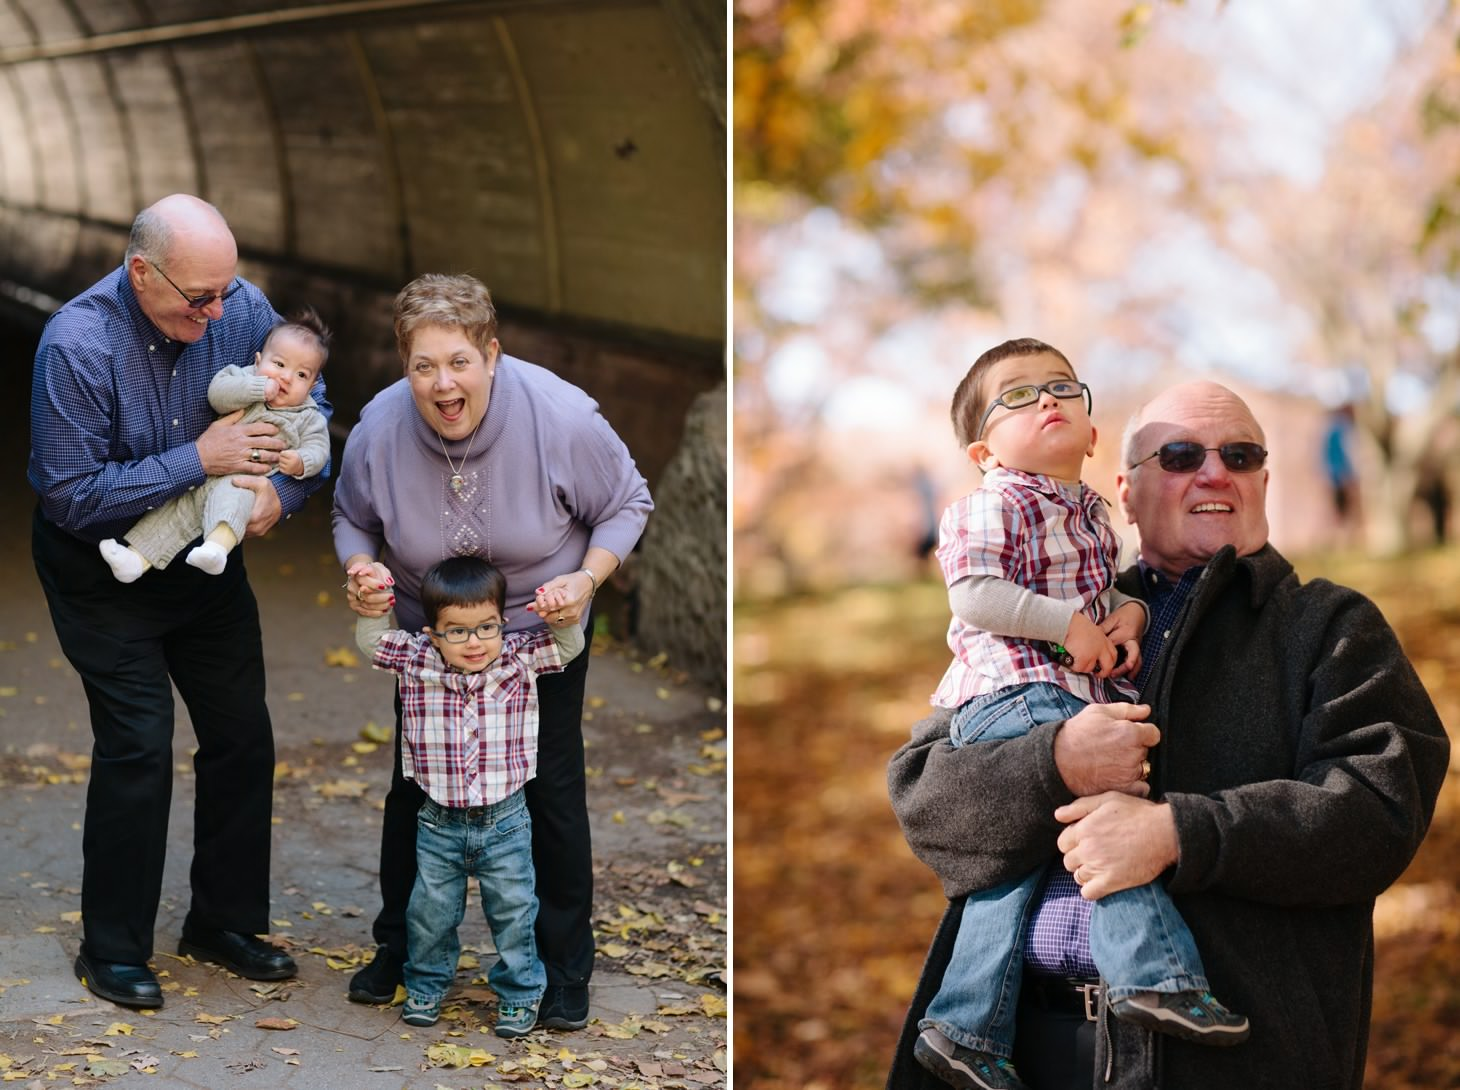 005-nyc-wedding-portrait-photographer-family-holiday-mini-session-children-fall-leaves-grandparents-smitten-chickens.jpg